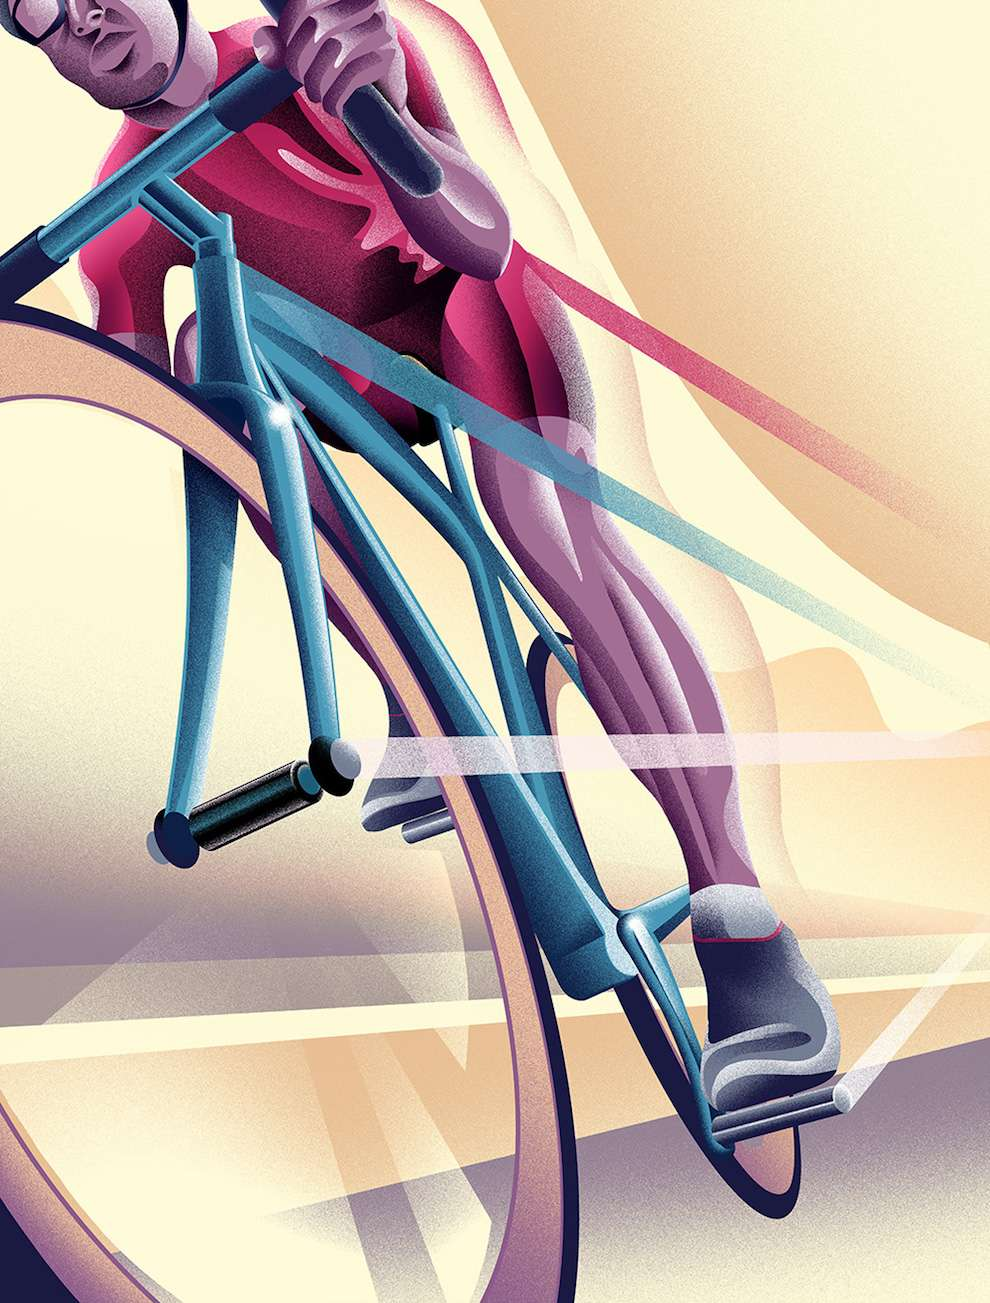 Doaly, Digital textural vintage illustration of a cyclist